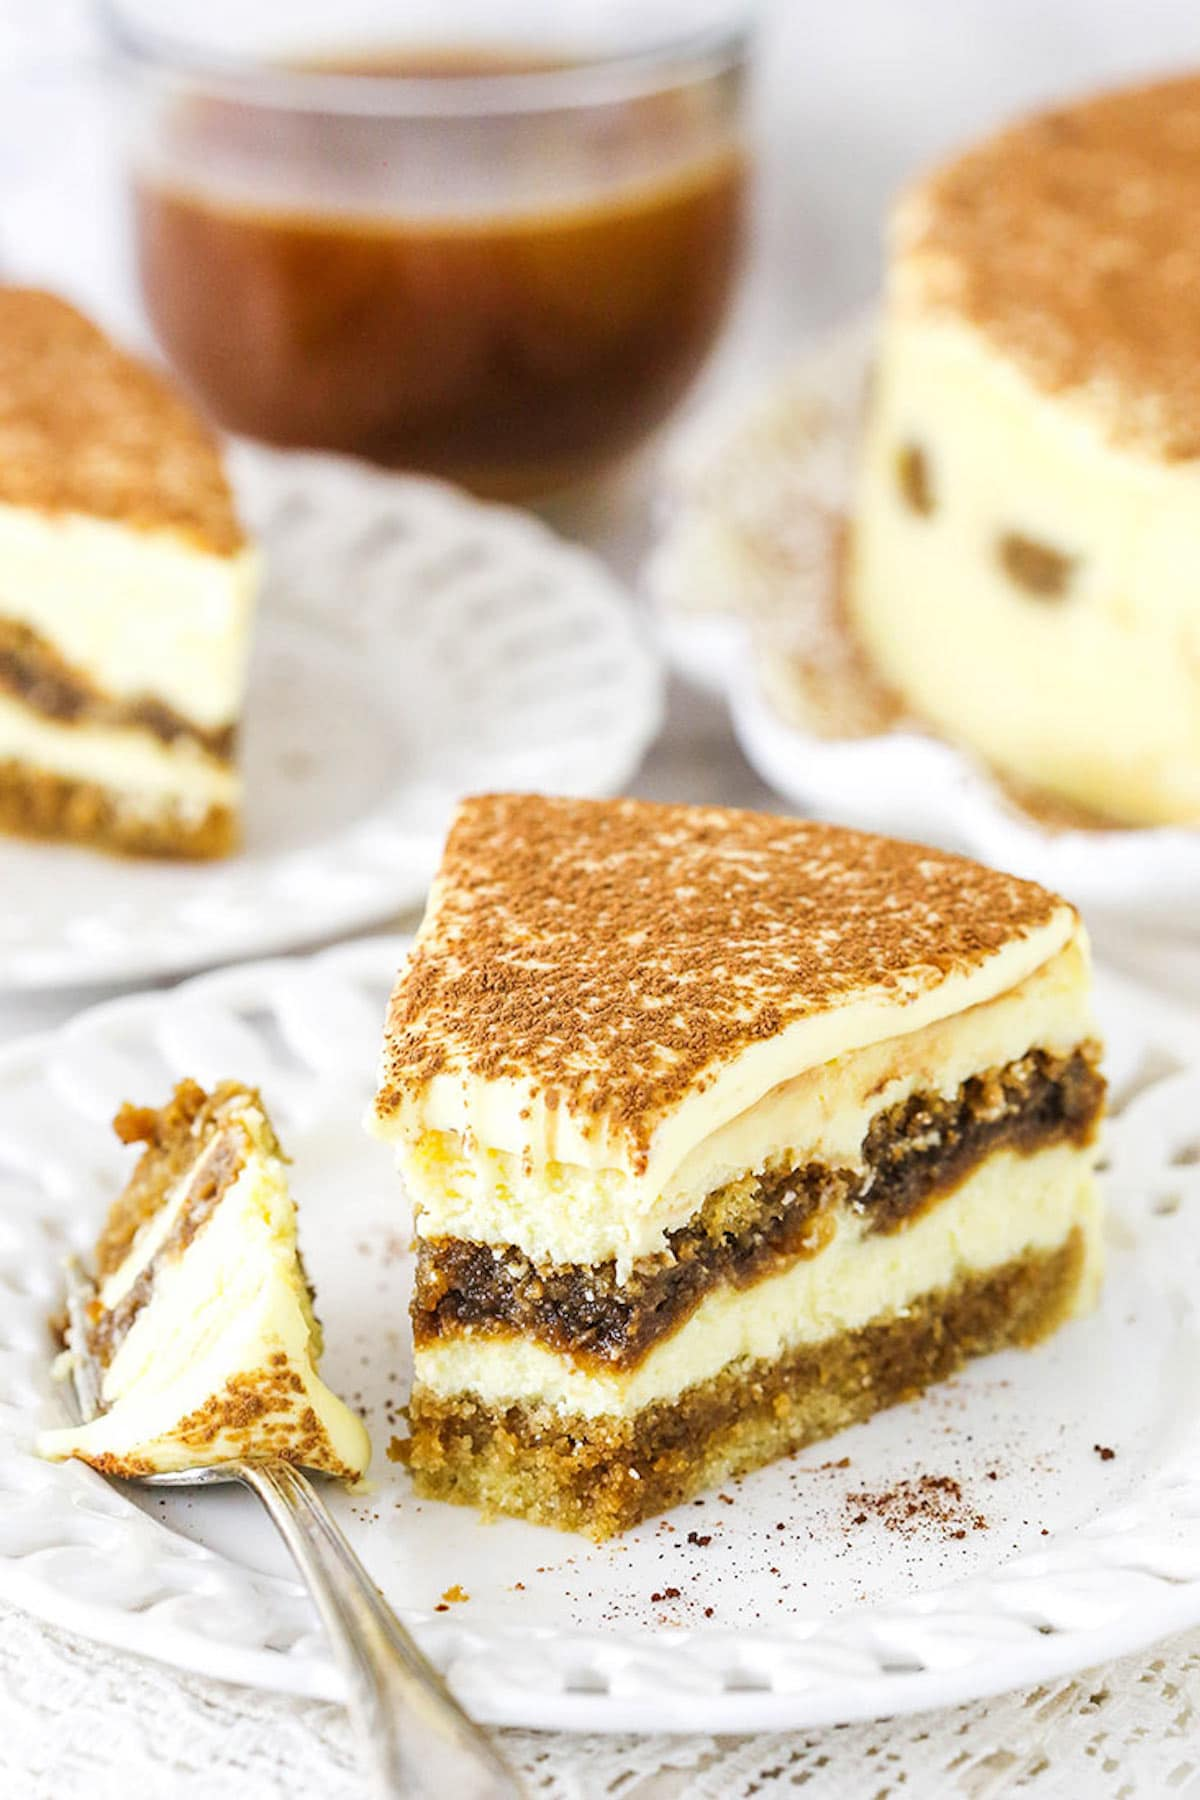 A Slice of Tiramisu Cheesecake on a Plate with One Bite on a Metal Fork